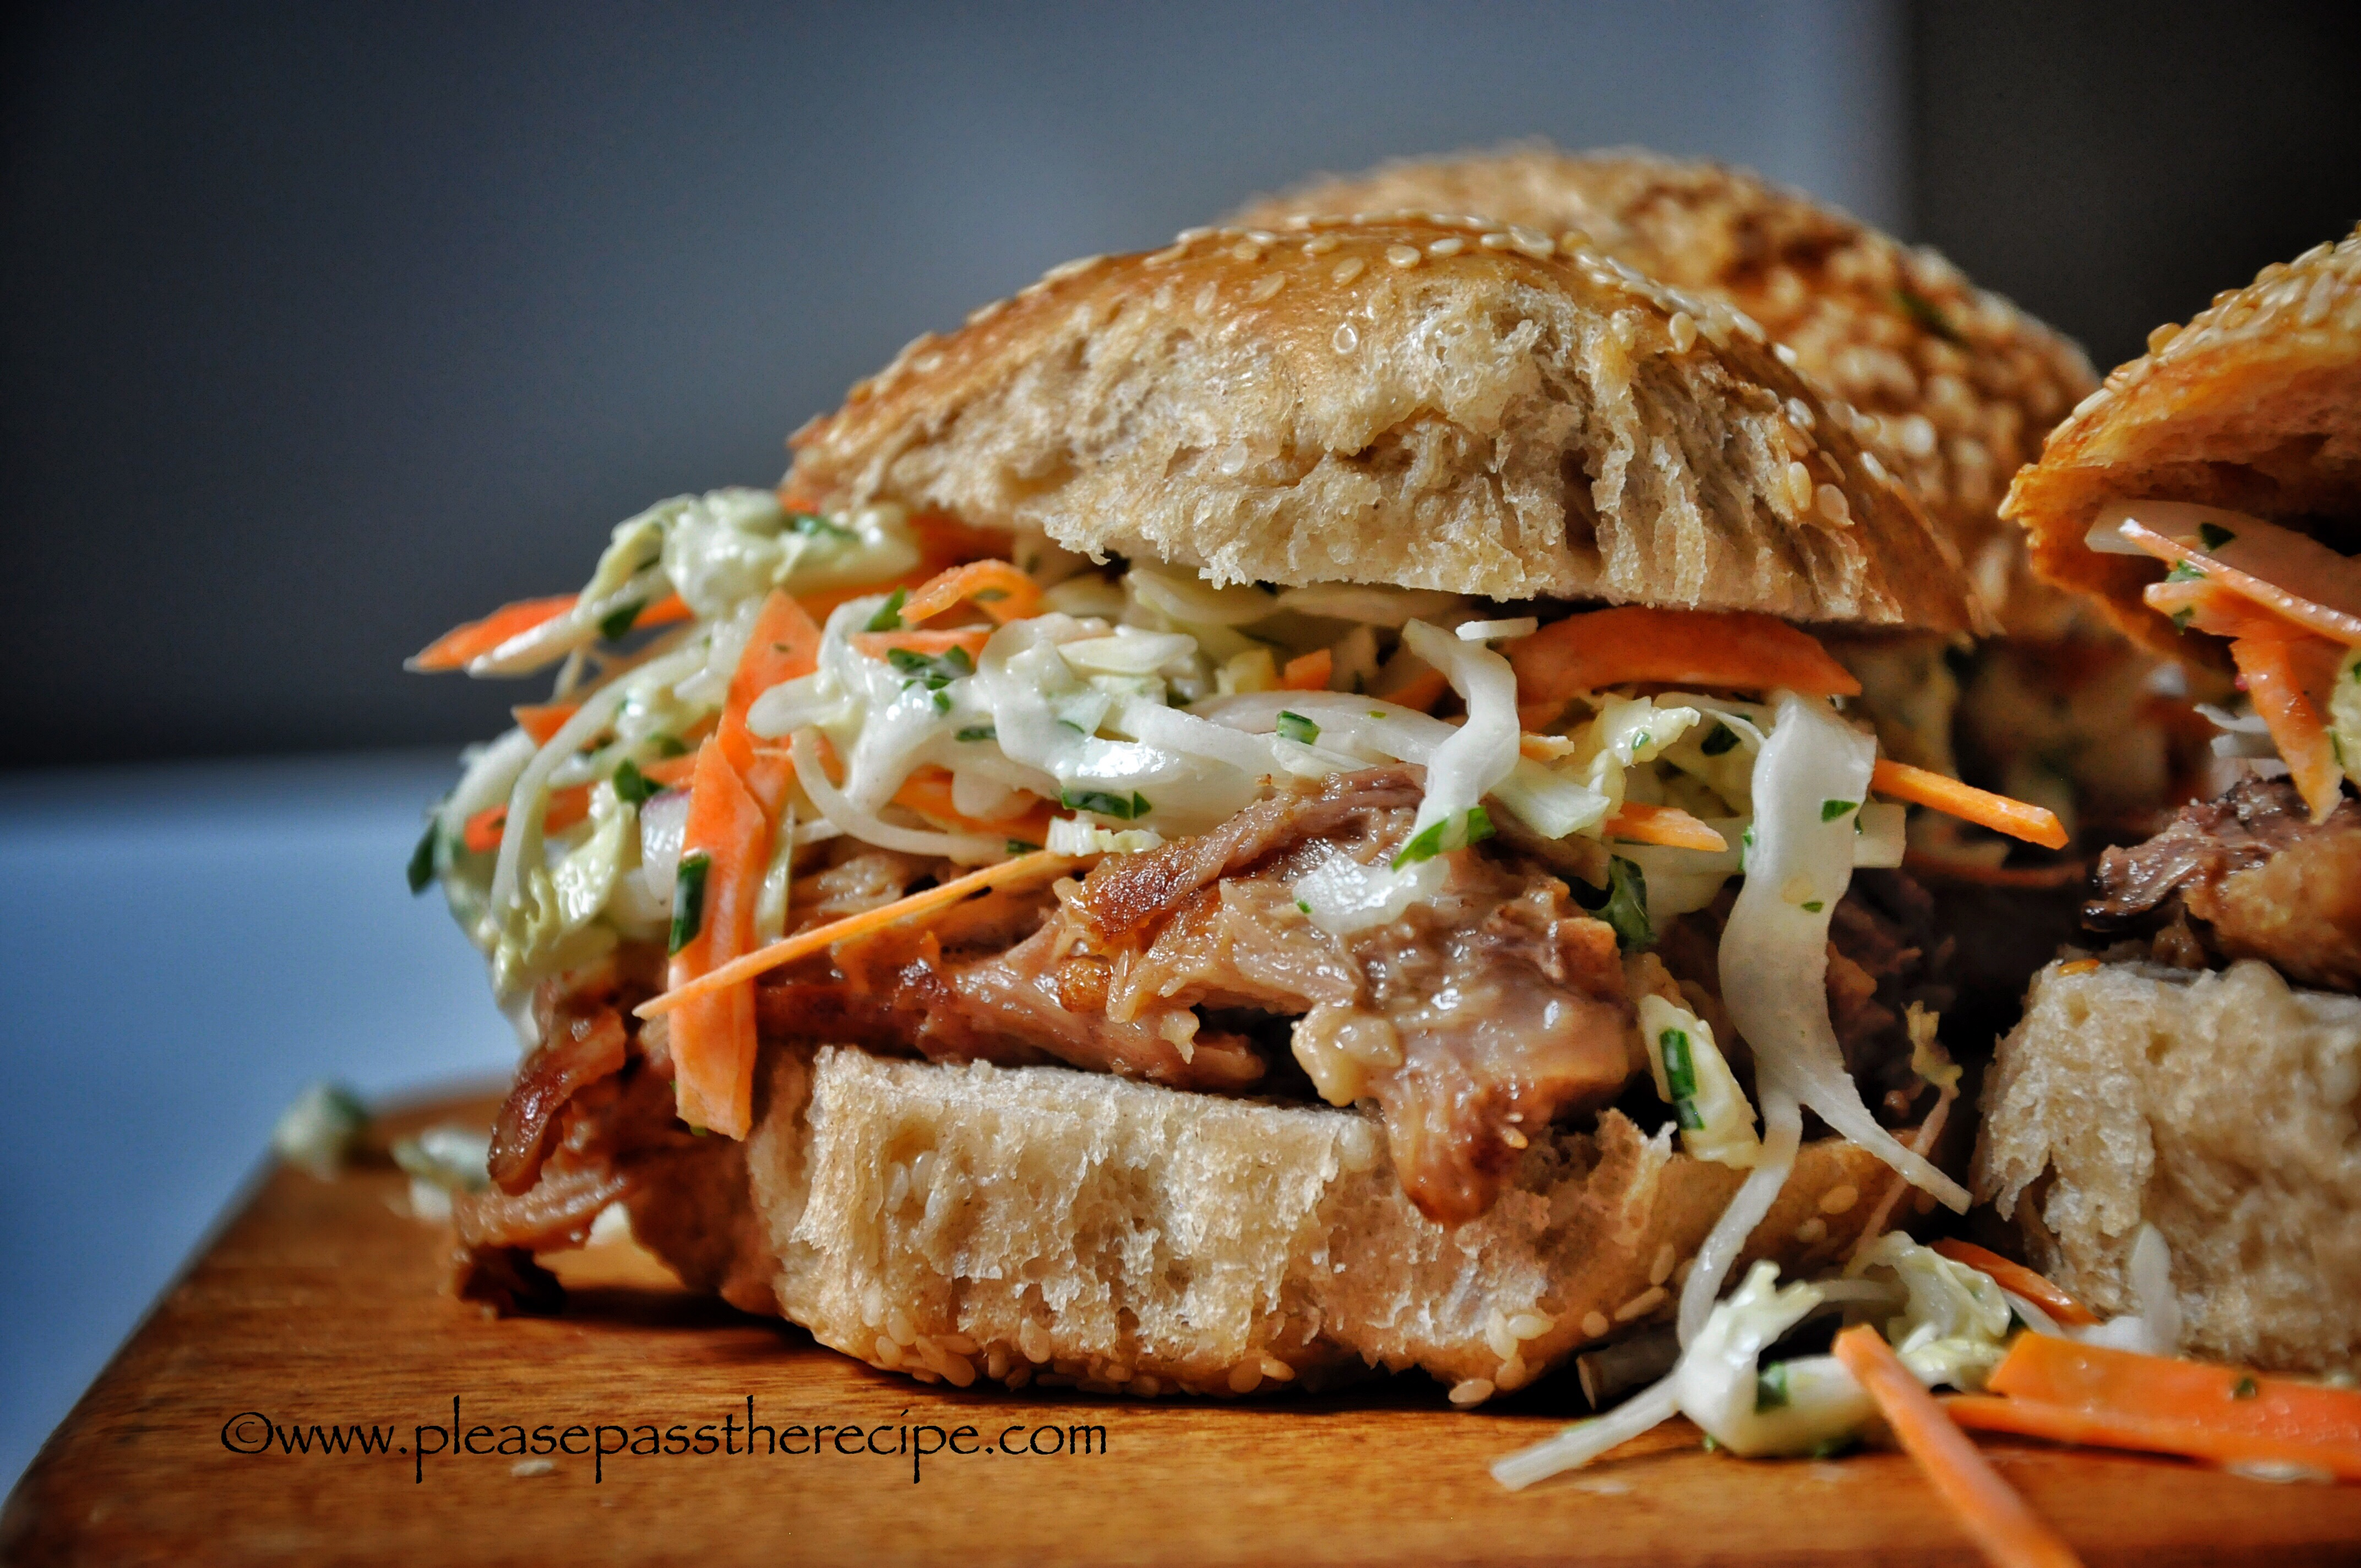 Maple Mustard Pulled Pork Burgers Please Pass The Recipe